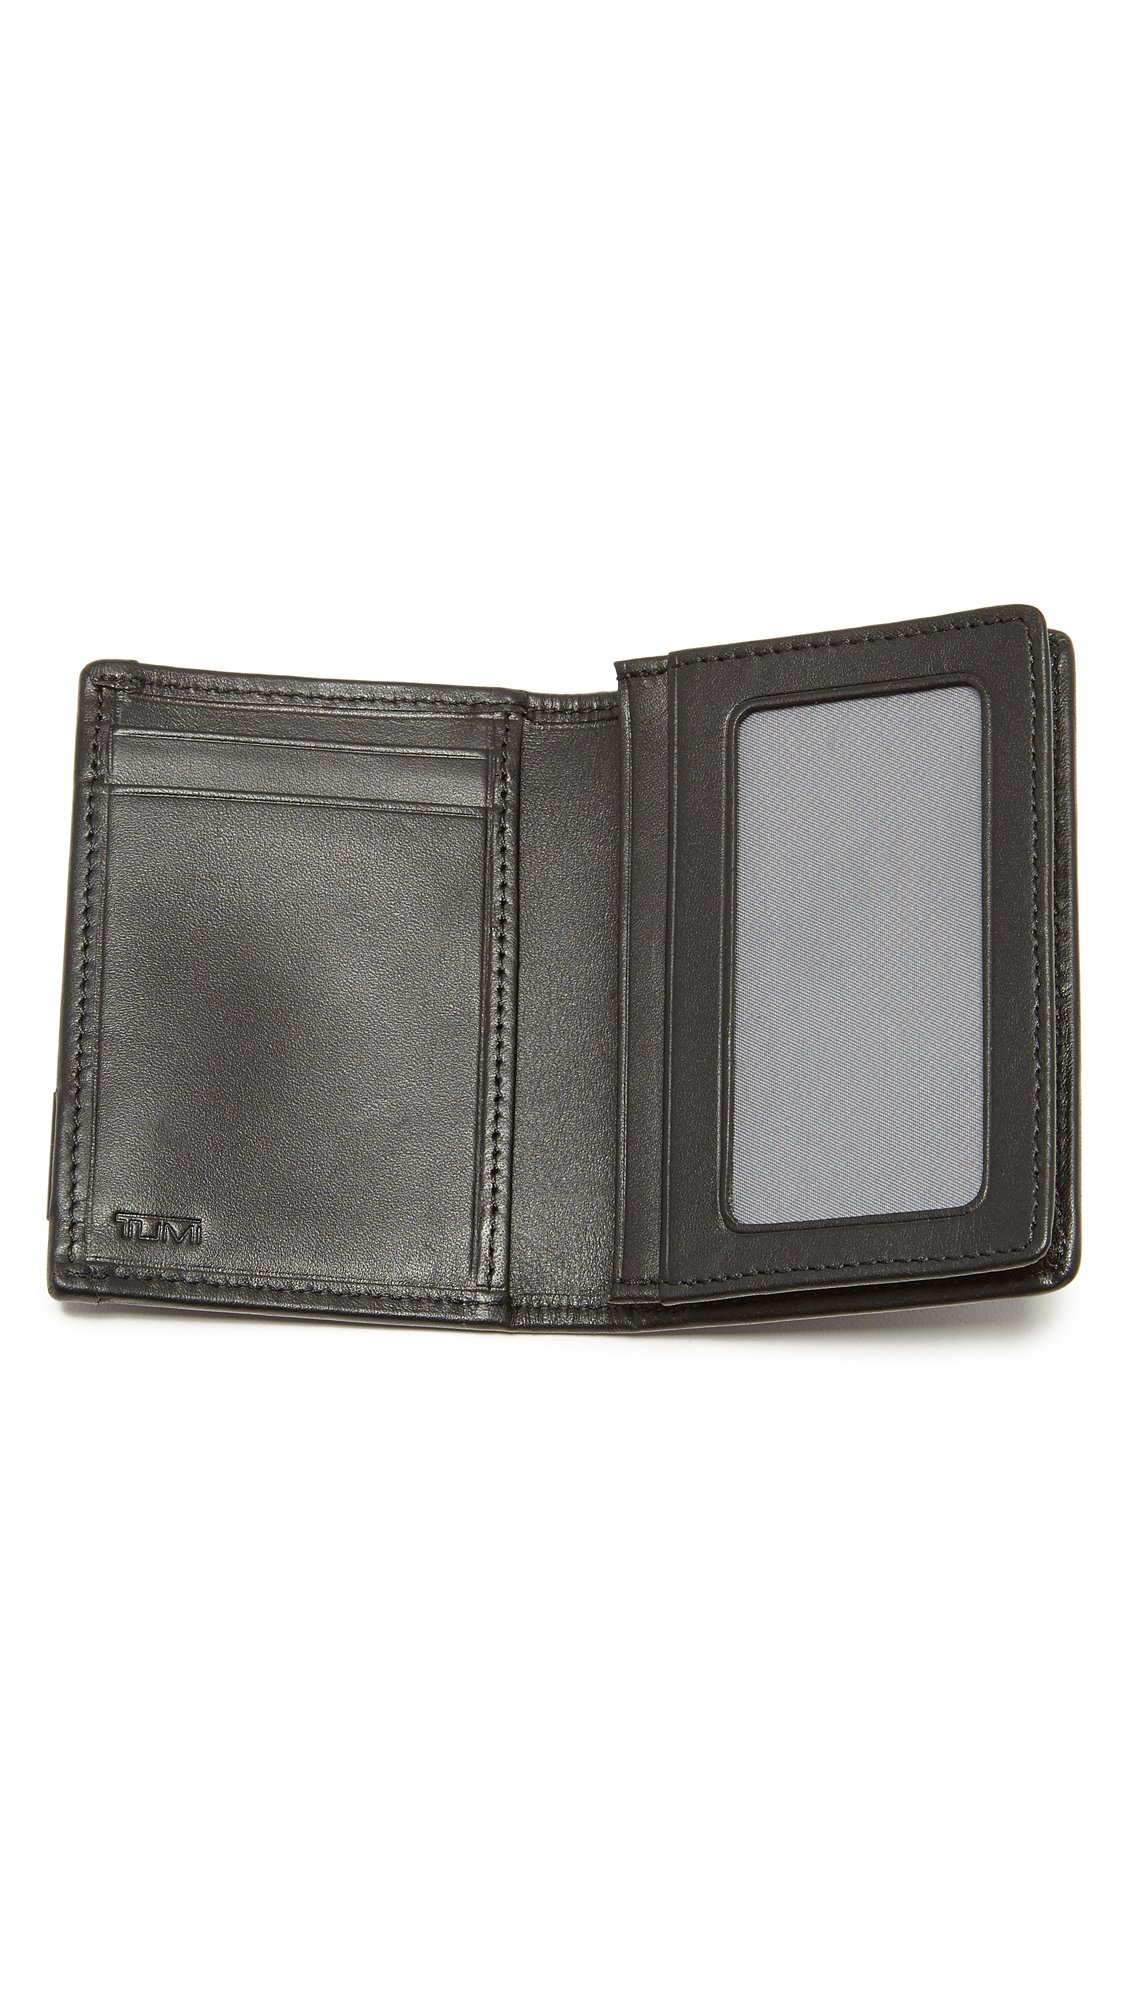 Tumi Alpha Gusseted Card Case with ID,Black,one size by Tumi (Image #4)